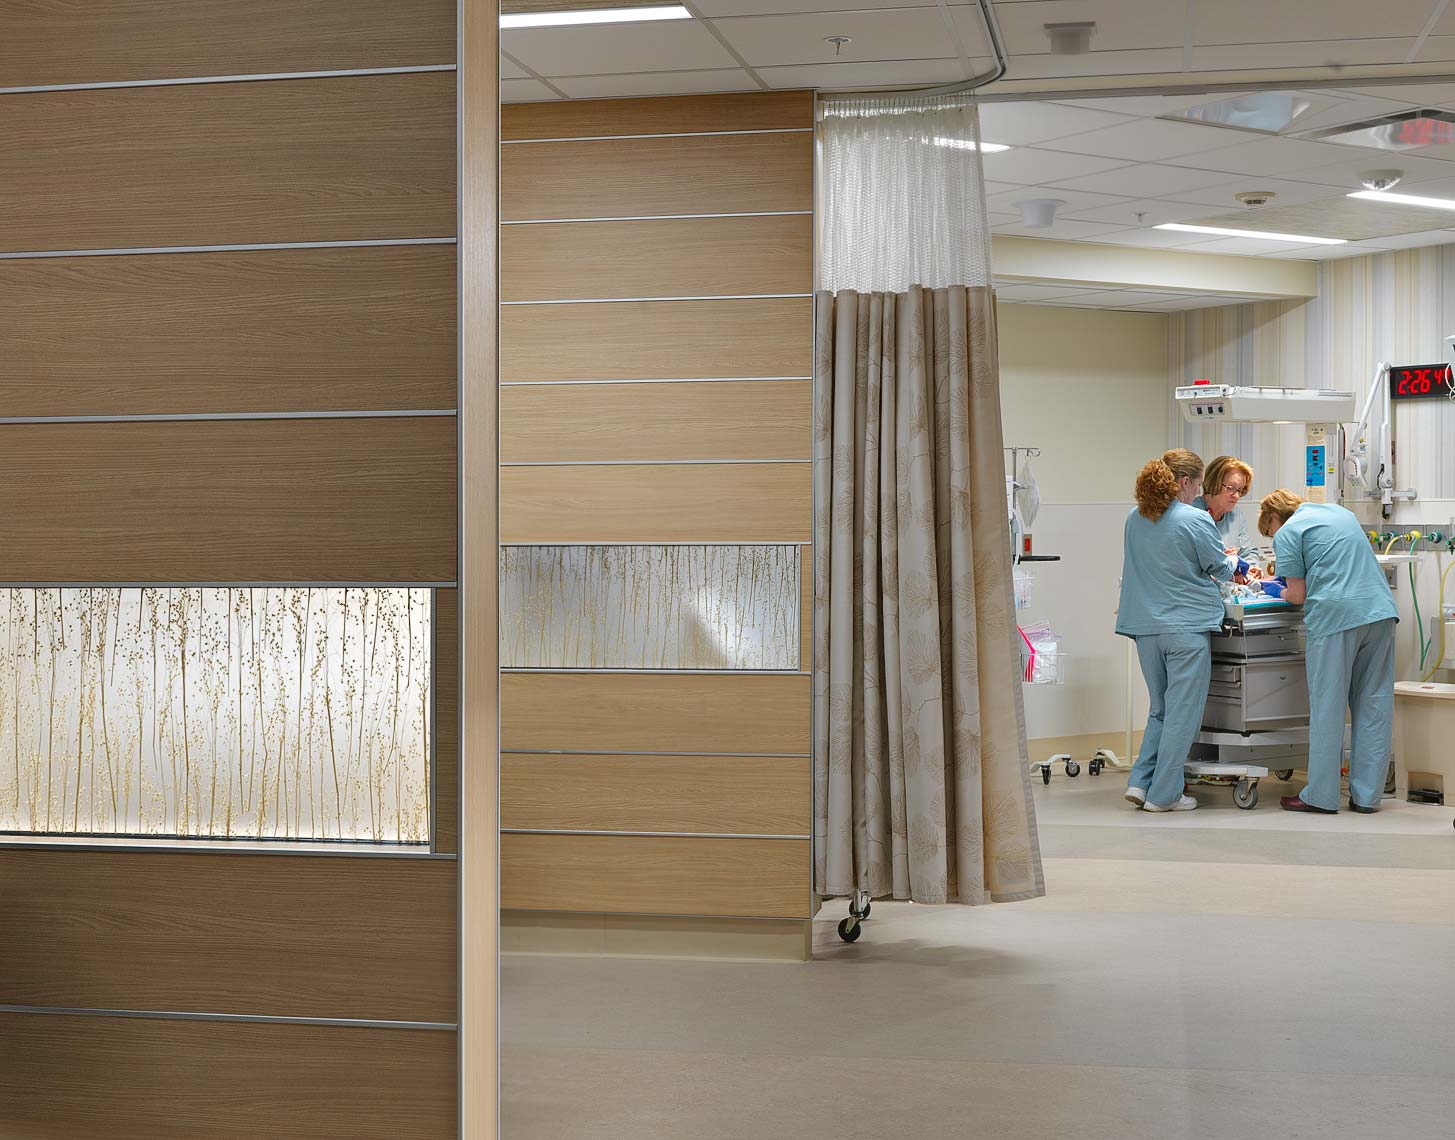 Special Care Nursery Henry Ford Allegiance Health | Maylone Architectural Photo